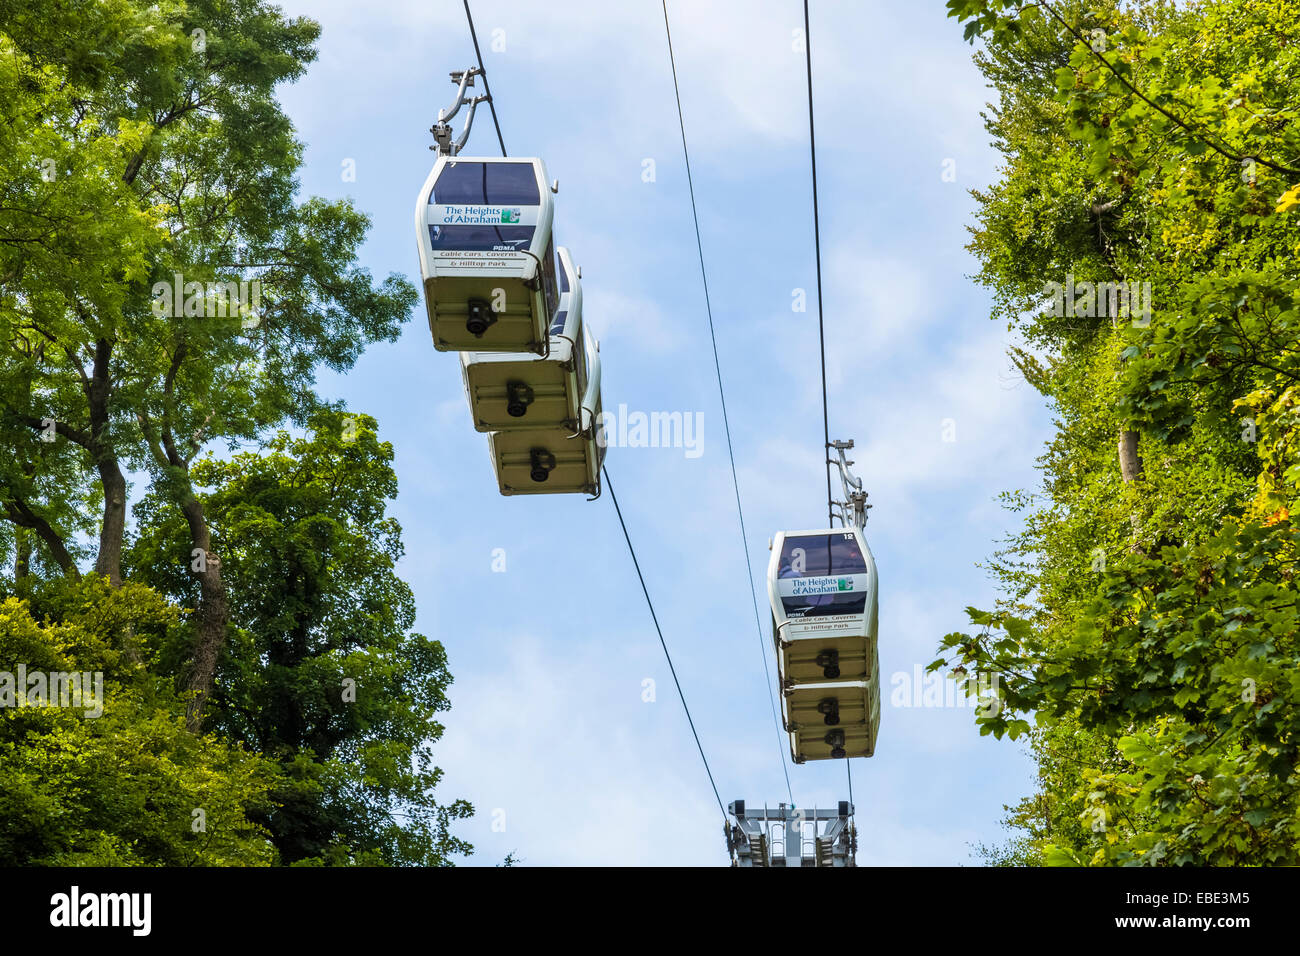 Cable cars on the Heights of Abraham, Matlock Bath, Derbyshire, England, UK - Stock Image